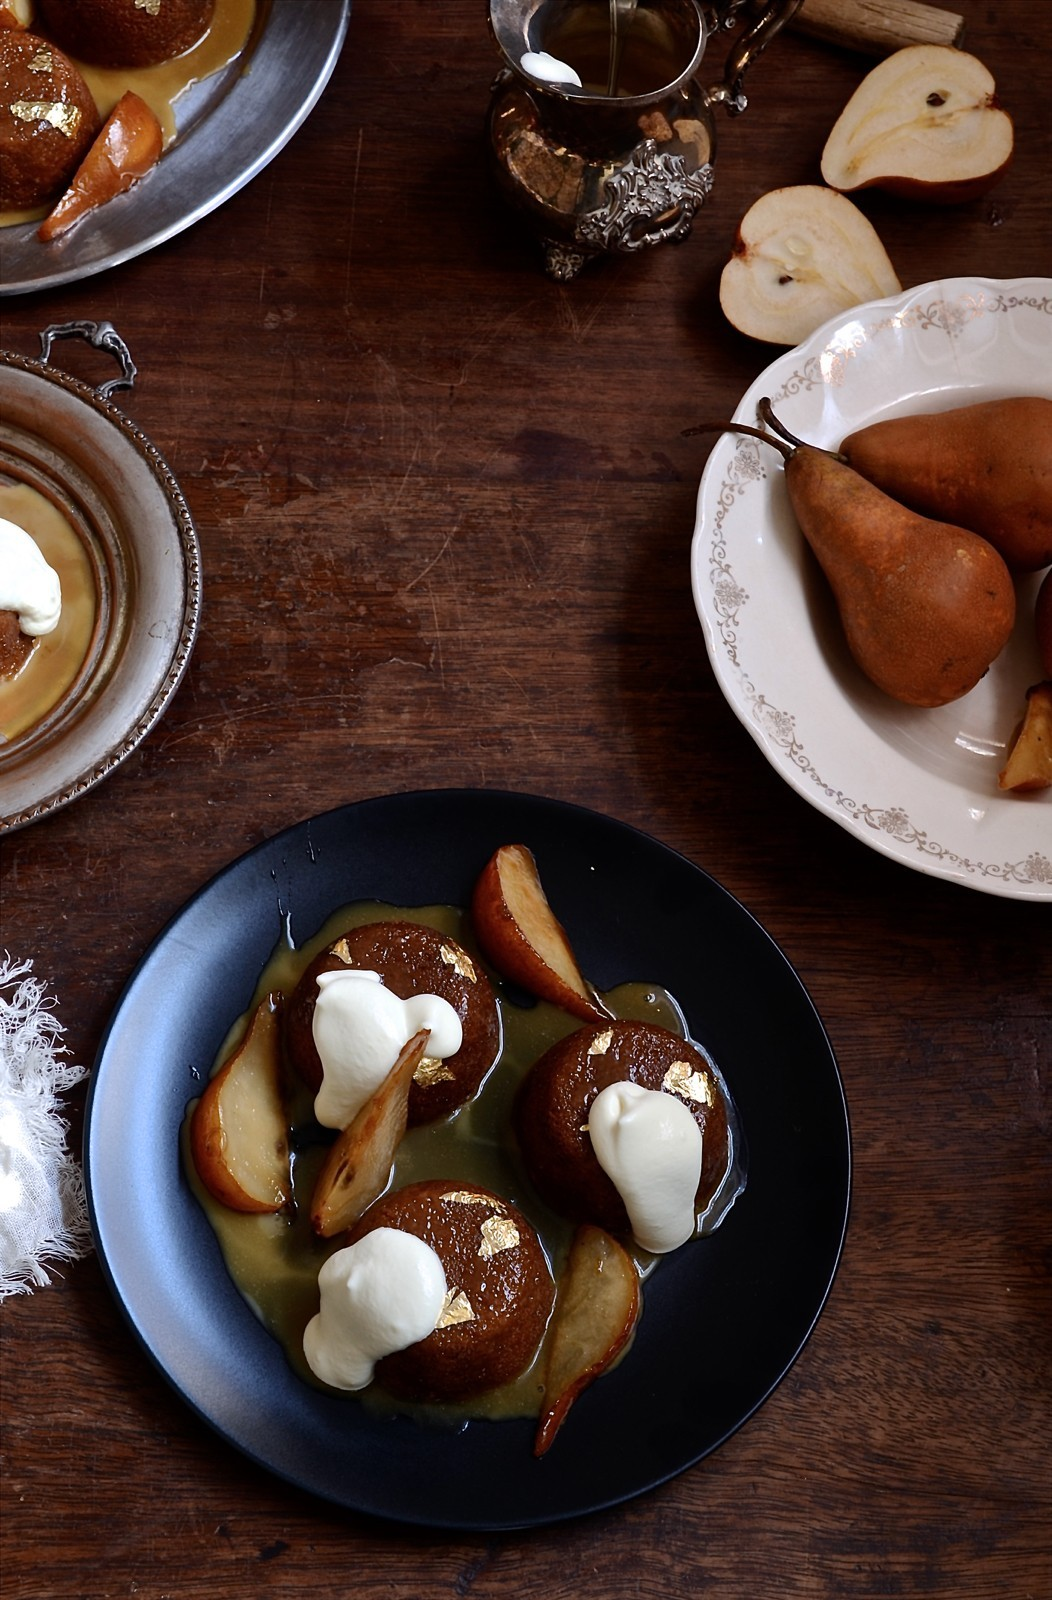 Caramel malva pudding with cognac pears | Bibbyskitchen recipes